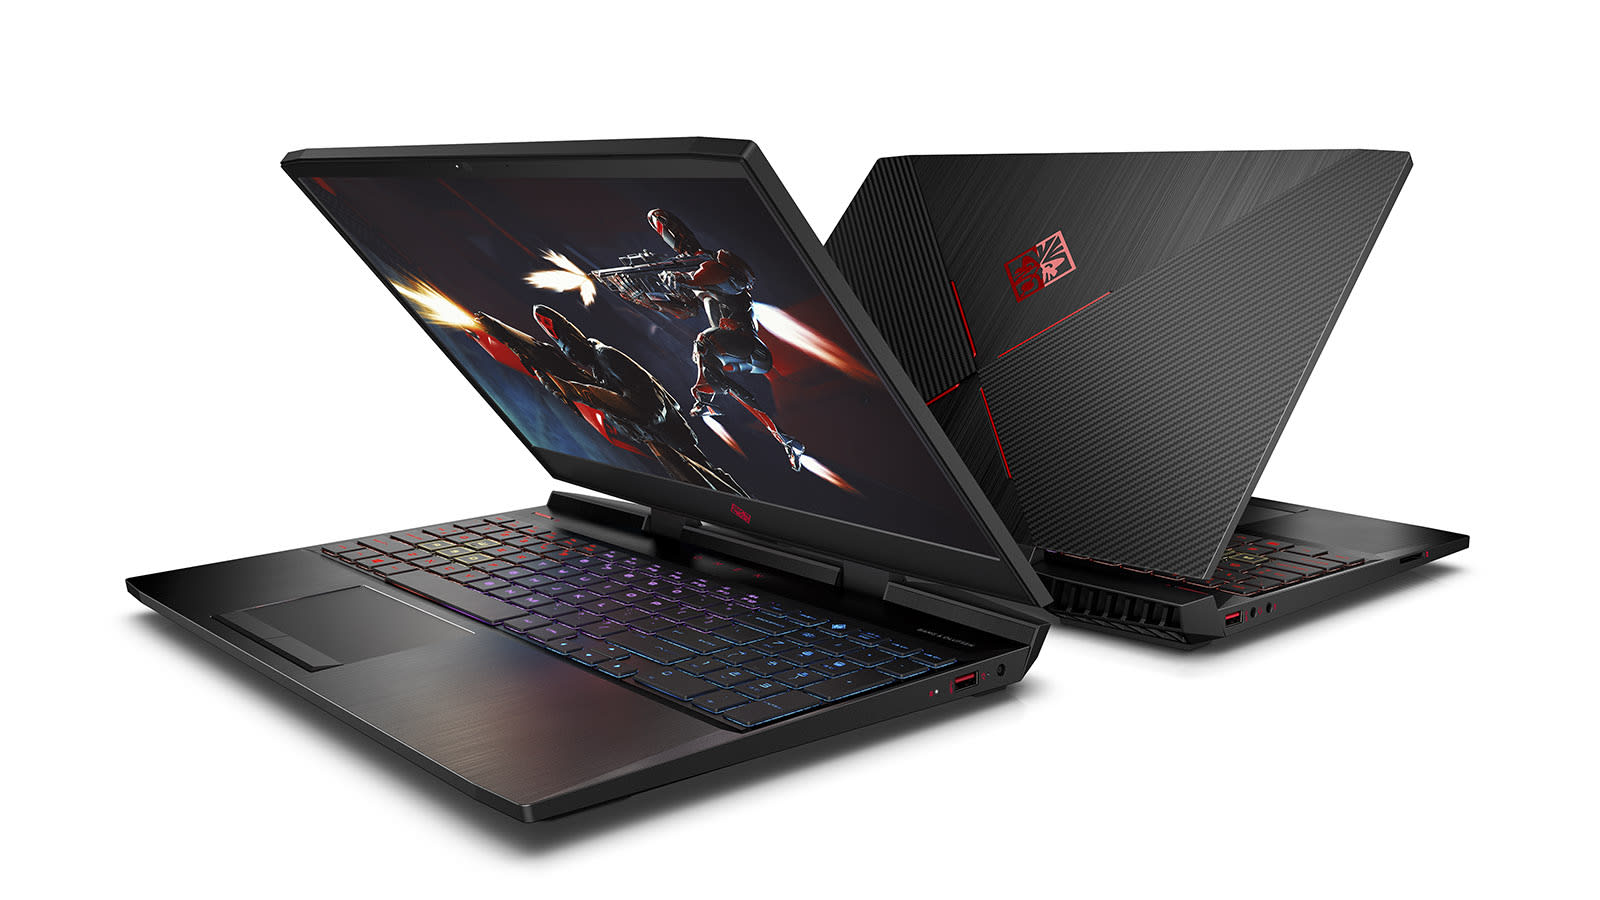 cc2812b5272 HP's Omen 15 is the first gaming laptop with a 240Hz display